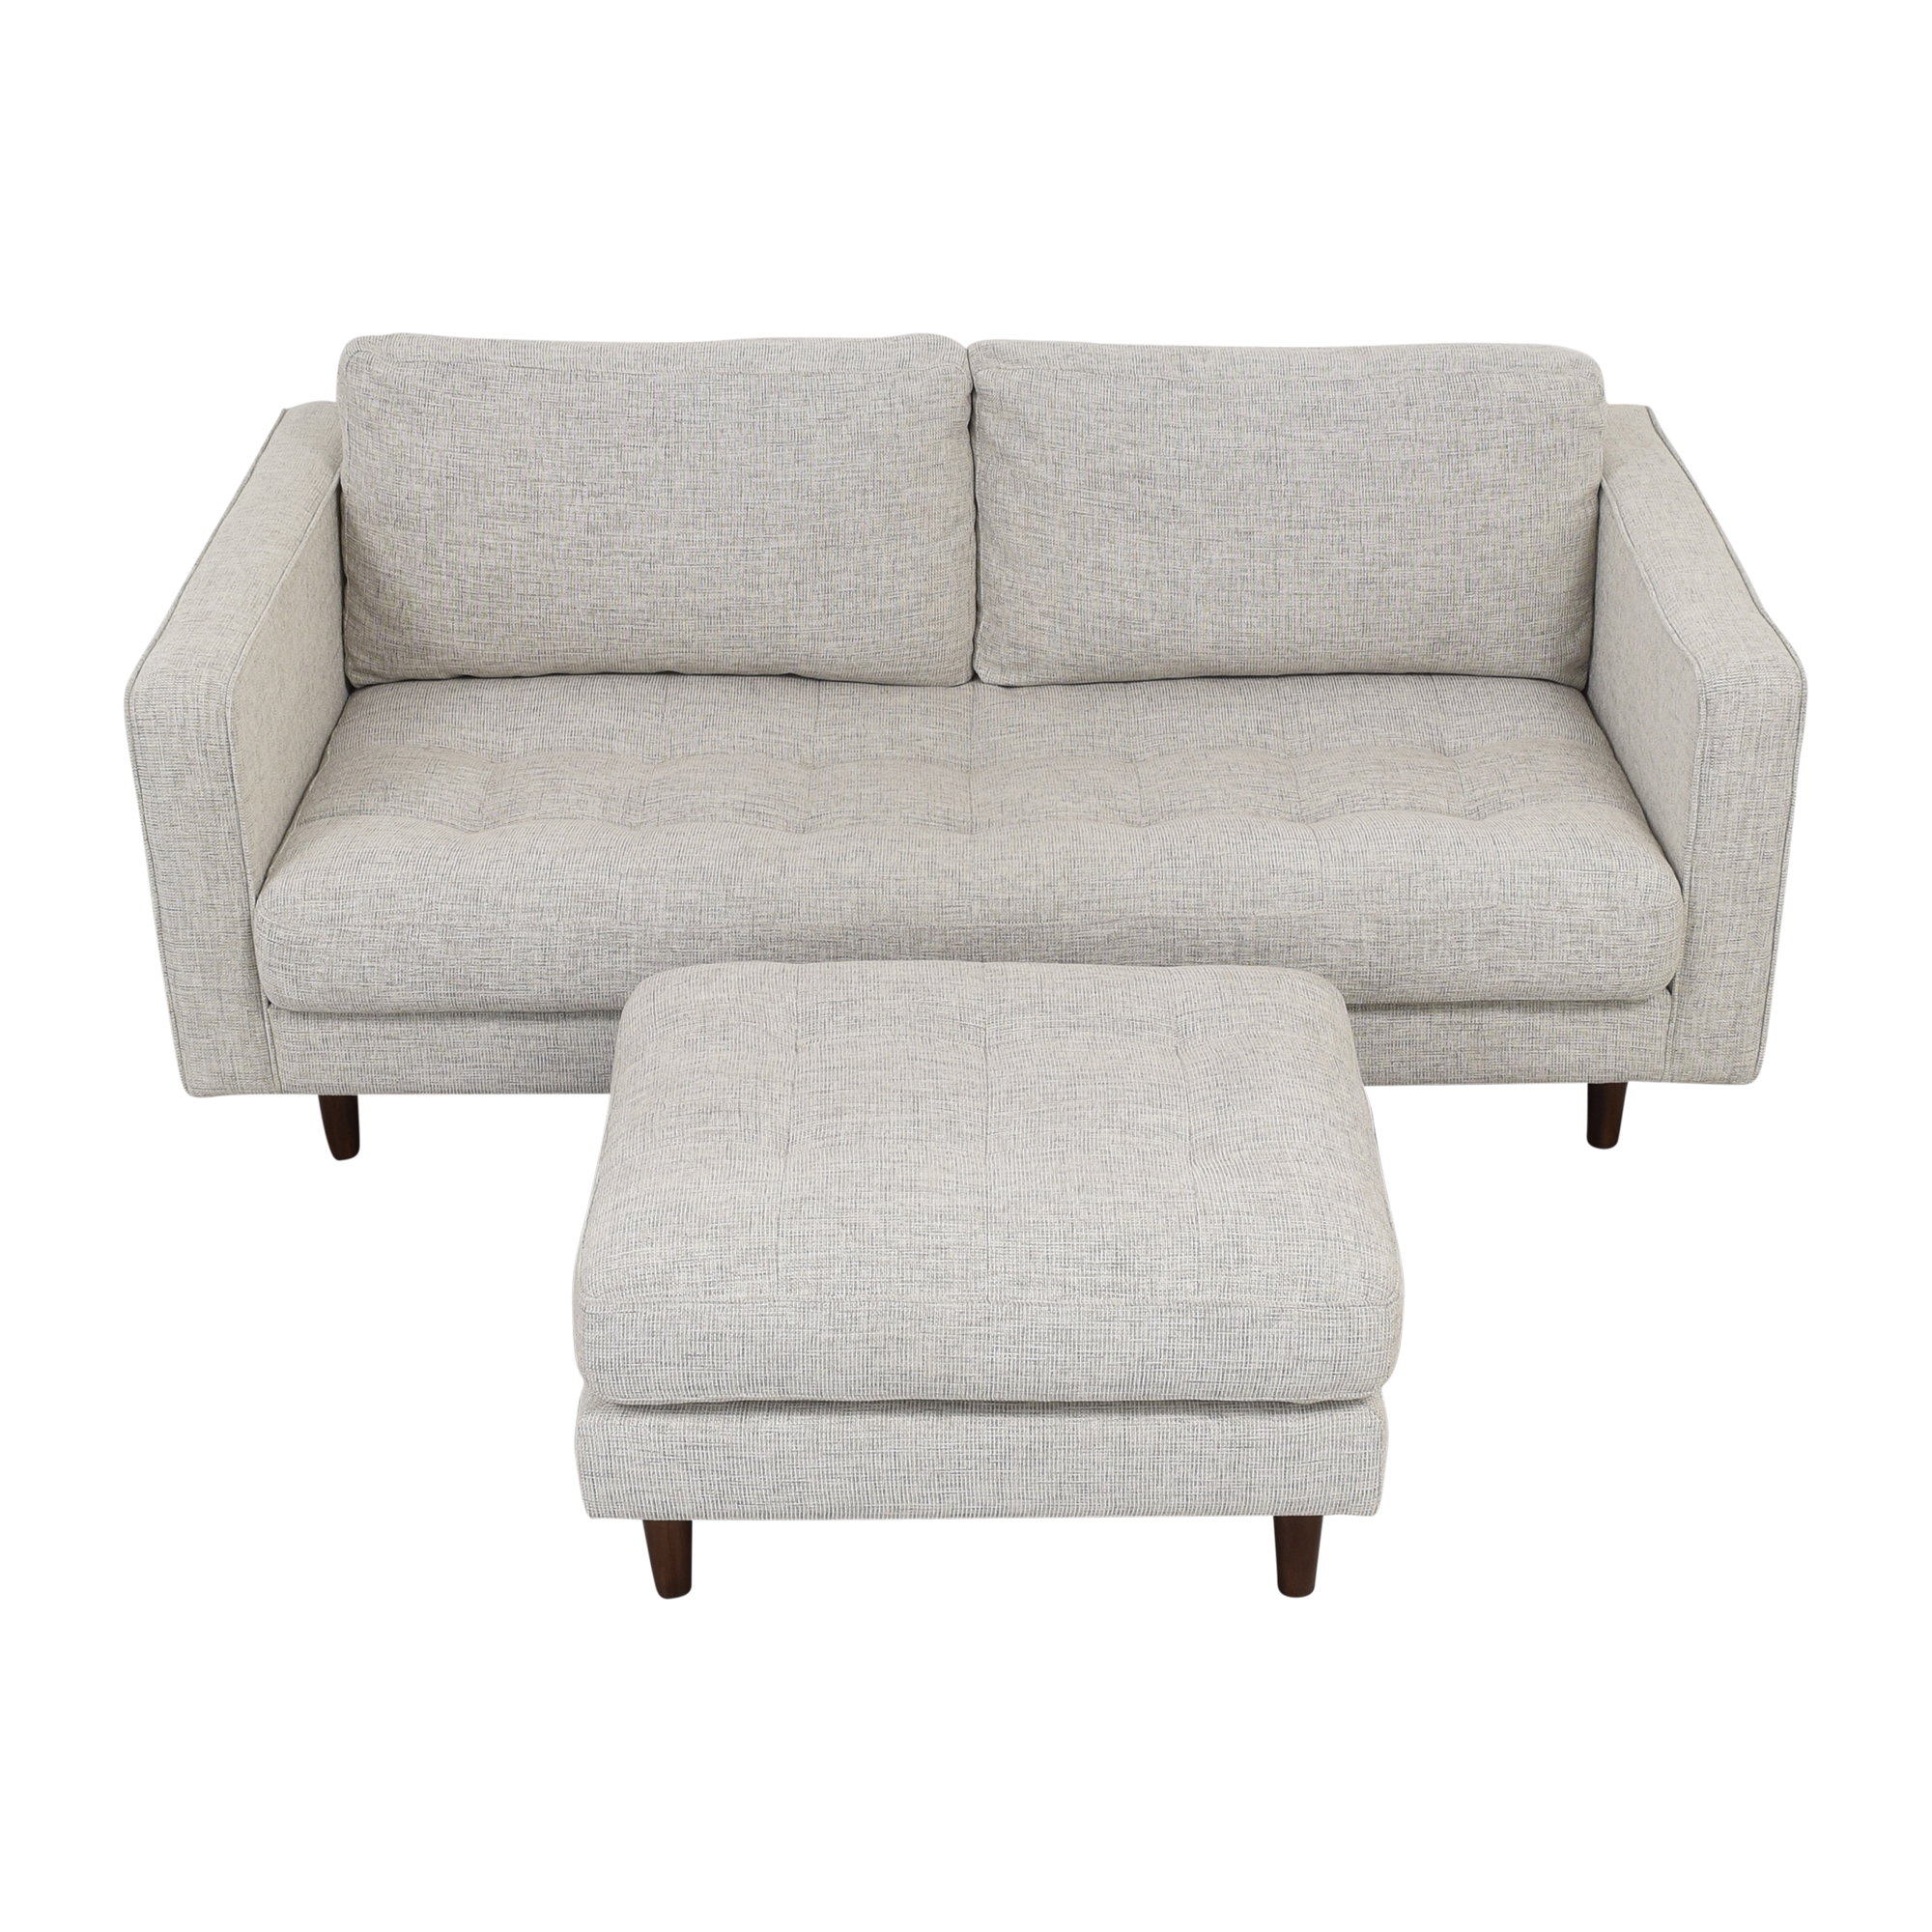 shop Article Sven Sofa with Ottoman Article